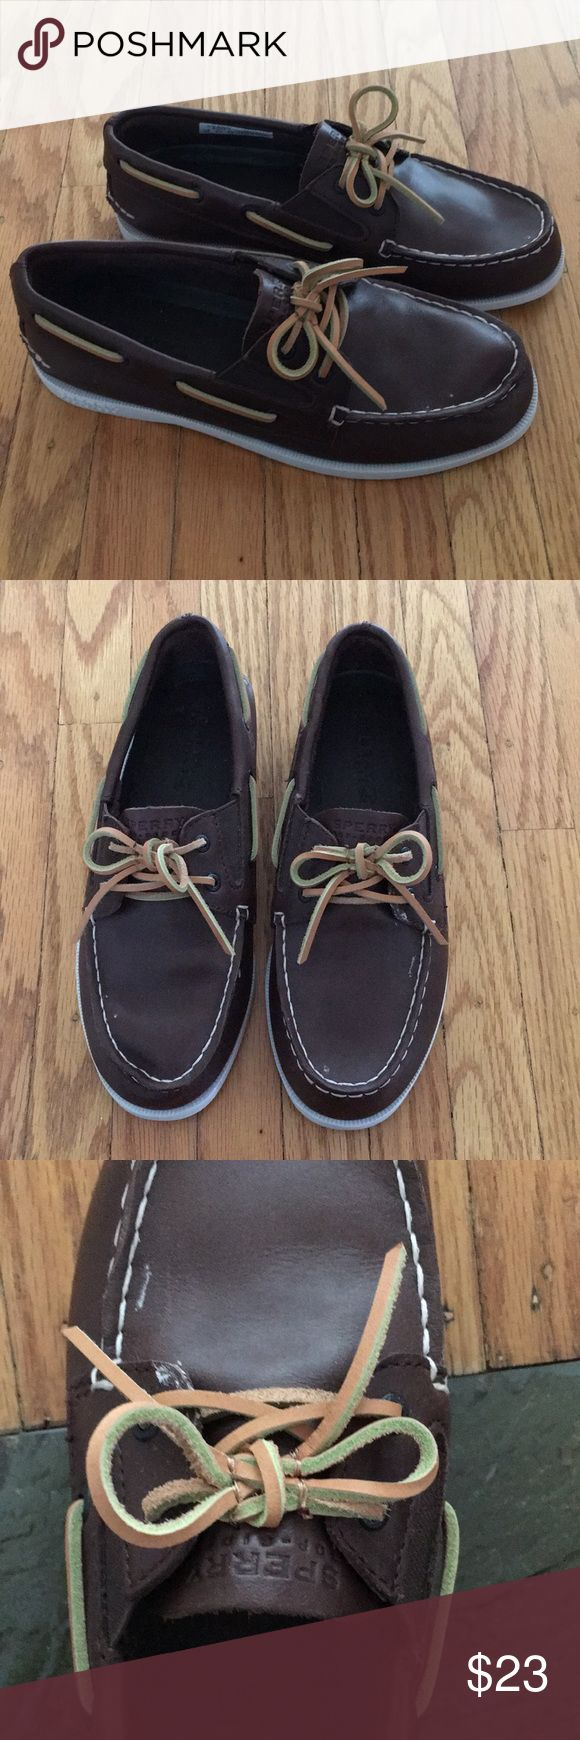 Boys Sperry top sider shoes😍 Excellent condition and only worn a few times. Boys sperry top siders. Slip on shoe no tying required. The laces stay tied (they are sewn on) size 3 boys 😎 Sperry Top-Sider Shoes Dress Shoes